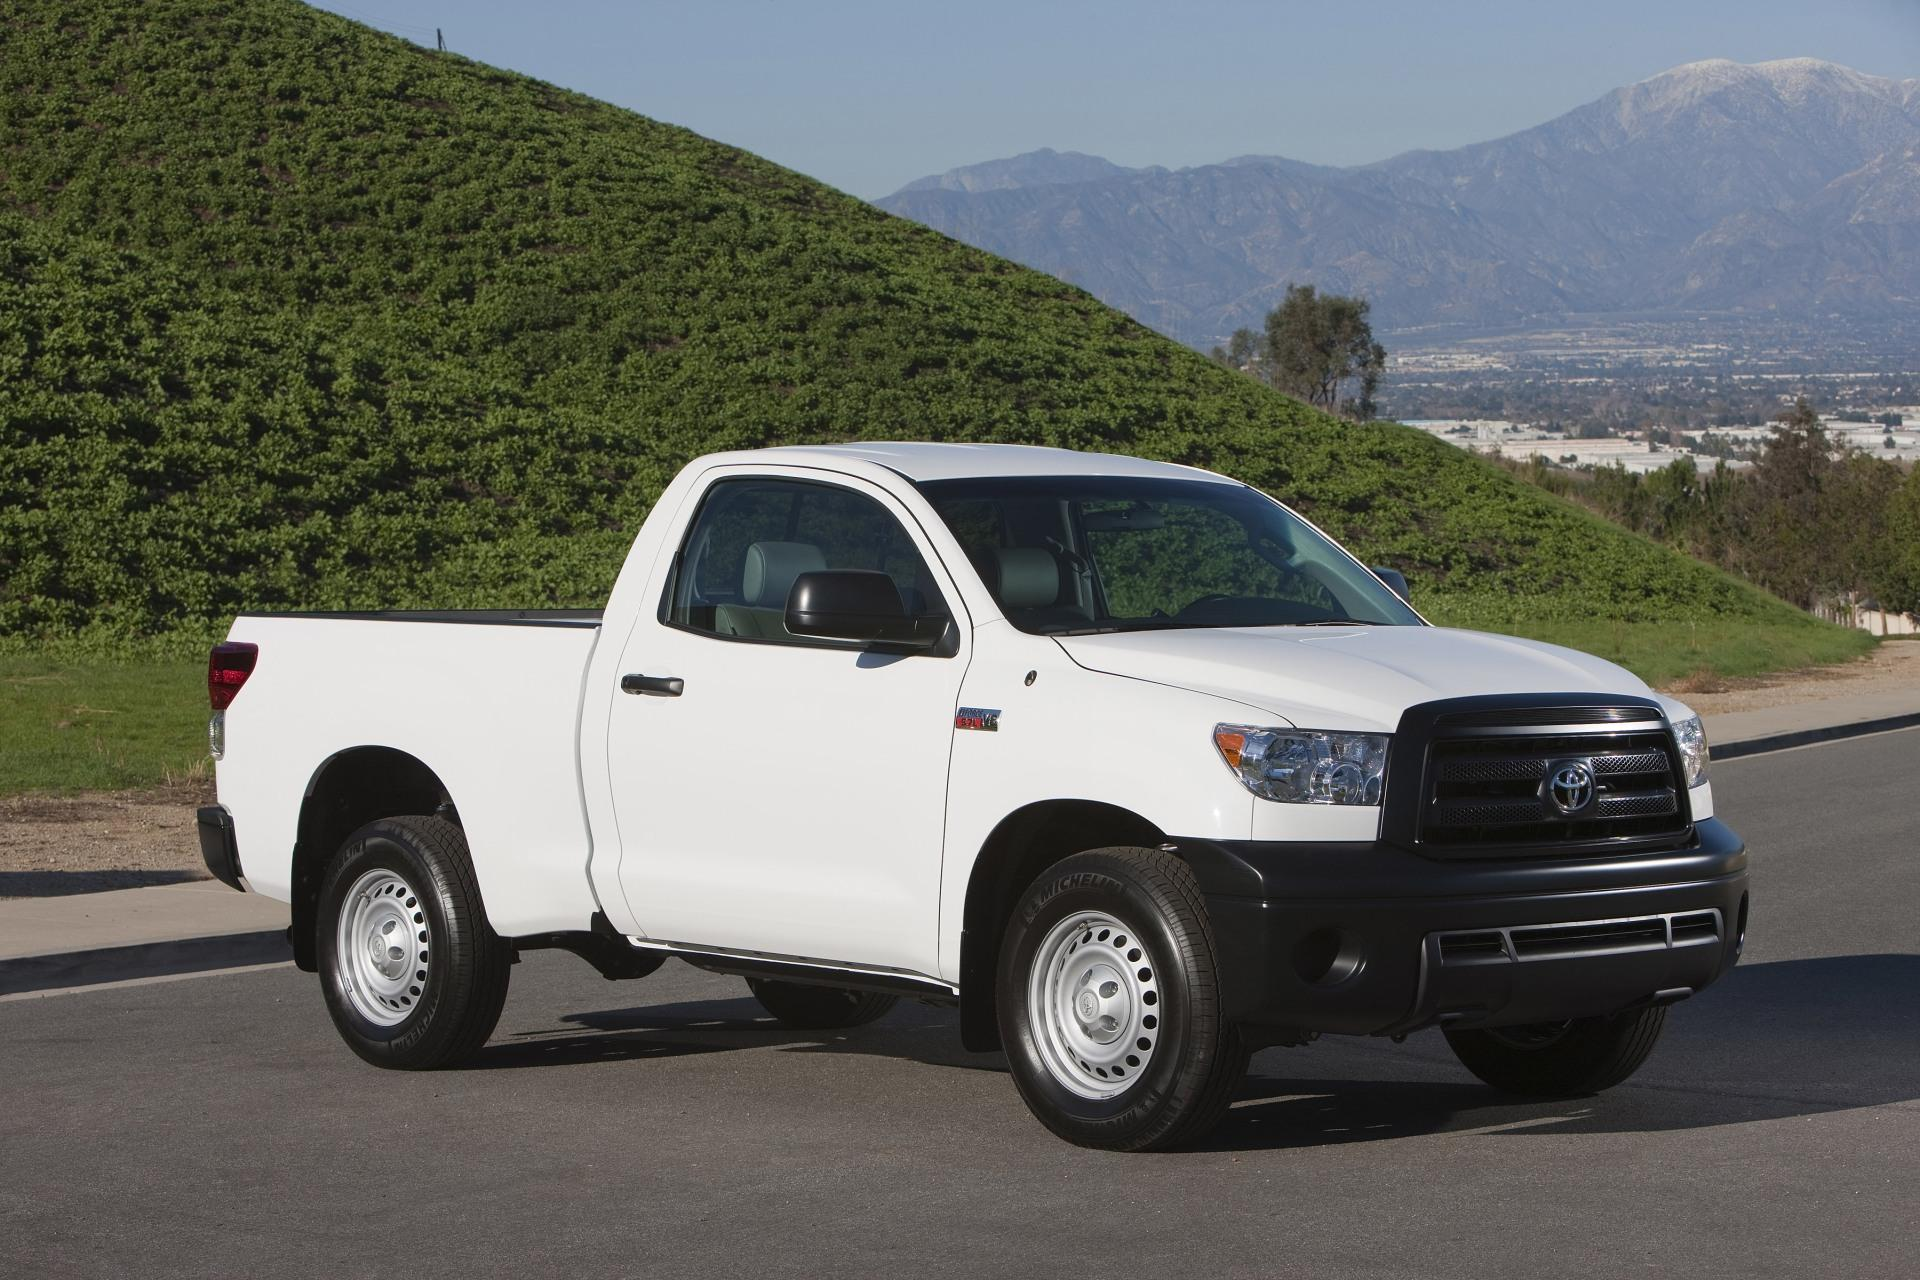 Toyota Tundra Towing Capacity >> 2009 Toyota Tundra Work Truck Package - conceptcarz.com